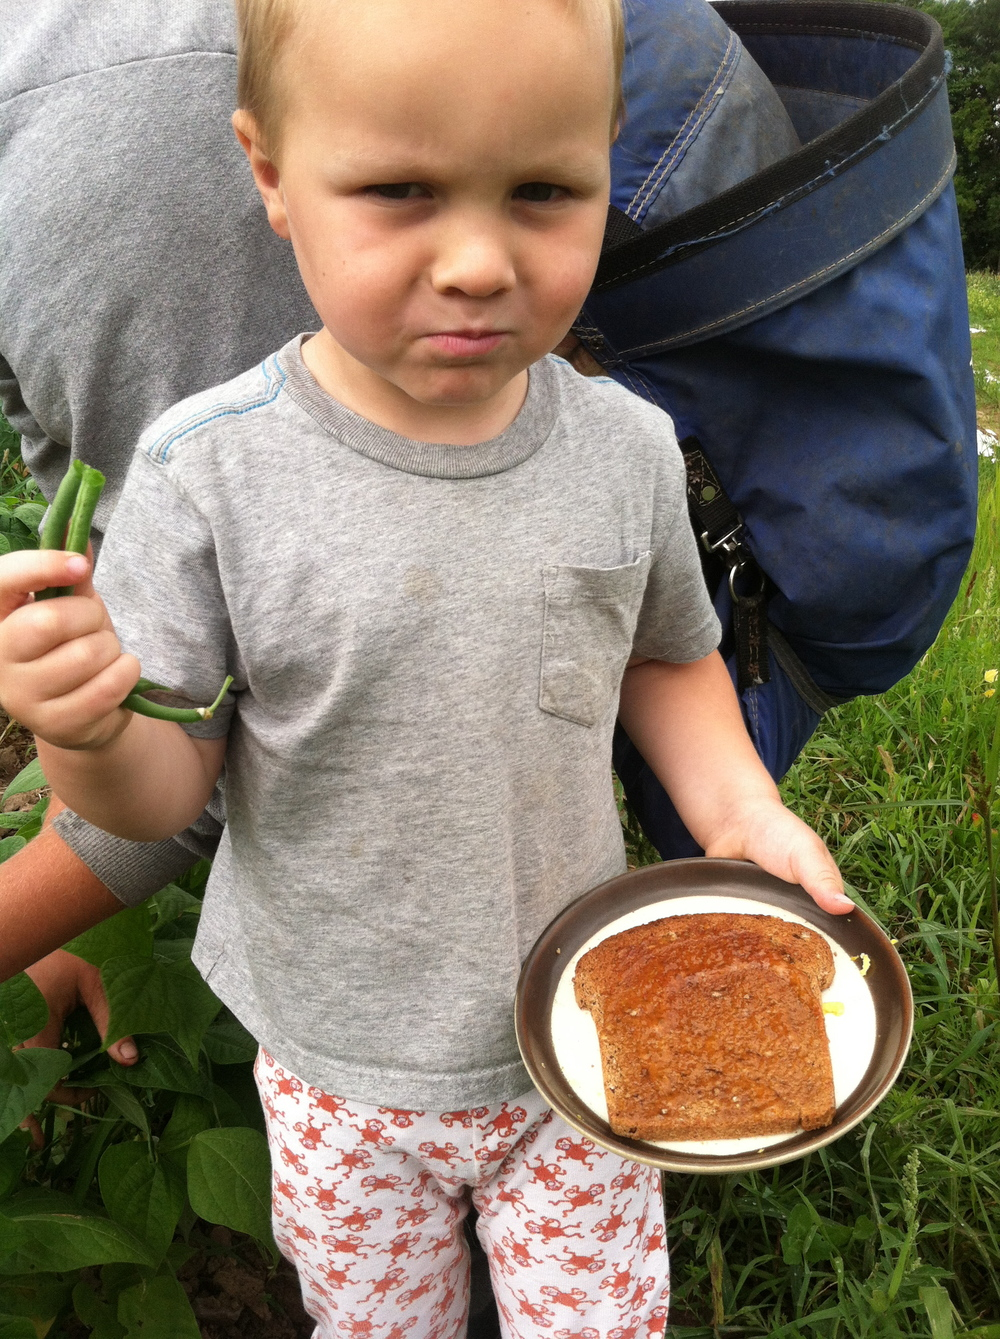 Otto's recipe for Jelly Beans: rub your greenbeans on your morning toast that has jelly on it.